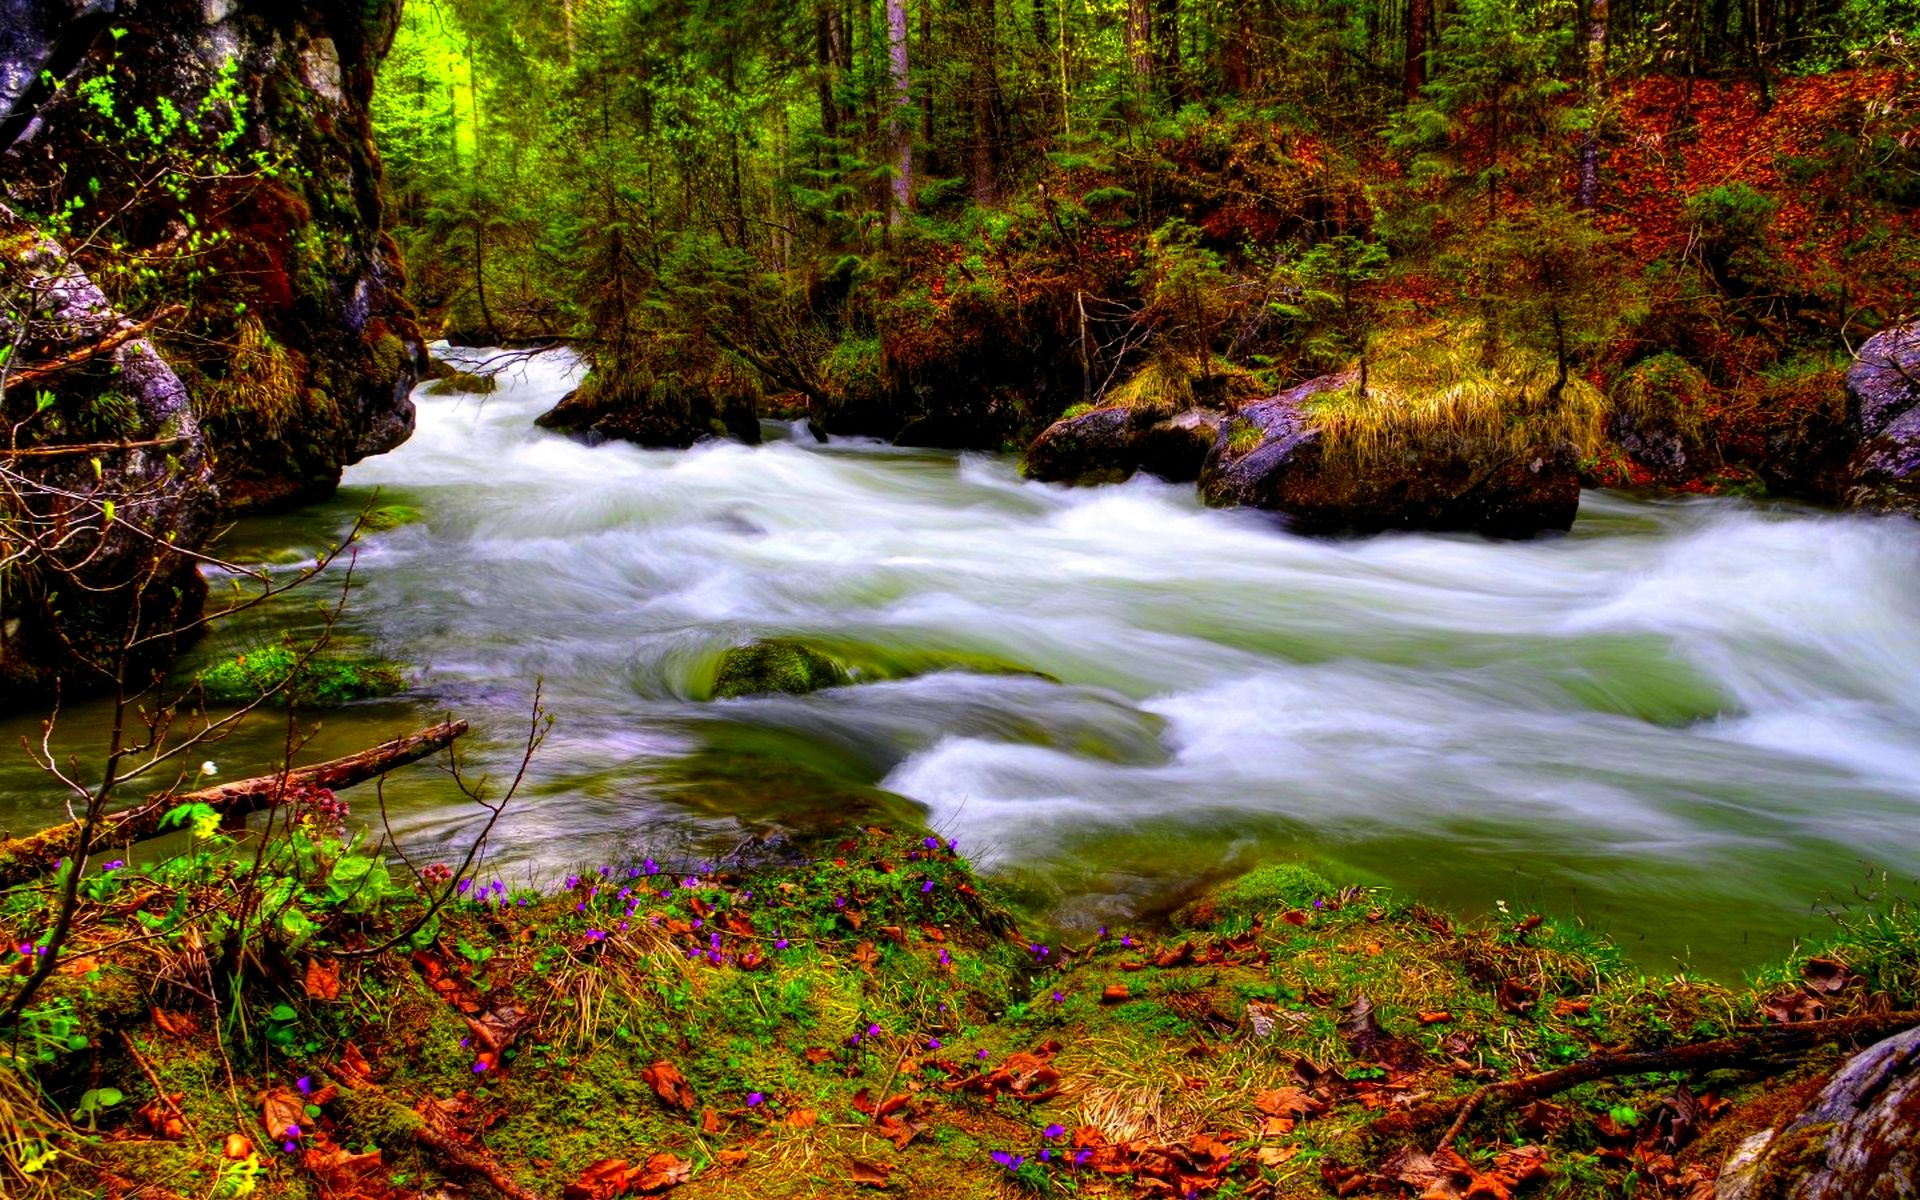 Free Fall Wallpaper For Iphone 5 Stream In Autumn Forest Hd Wallpaper Background Image